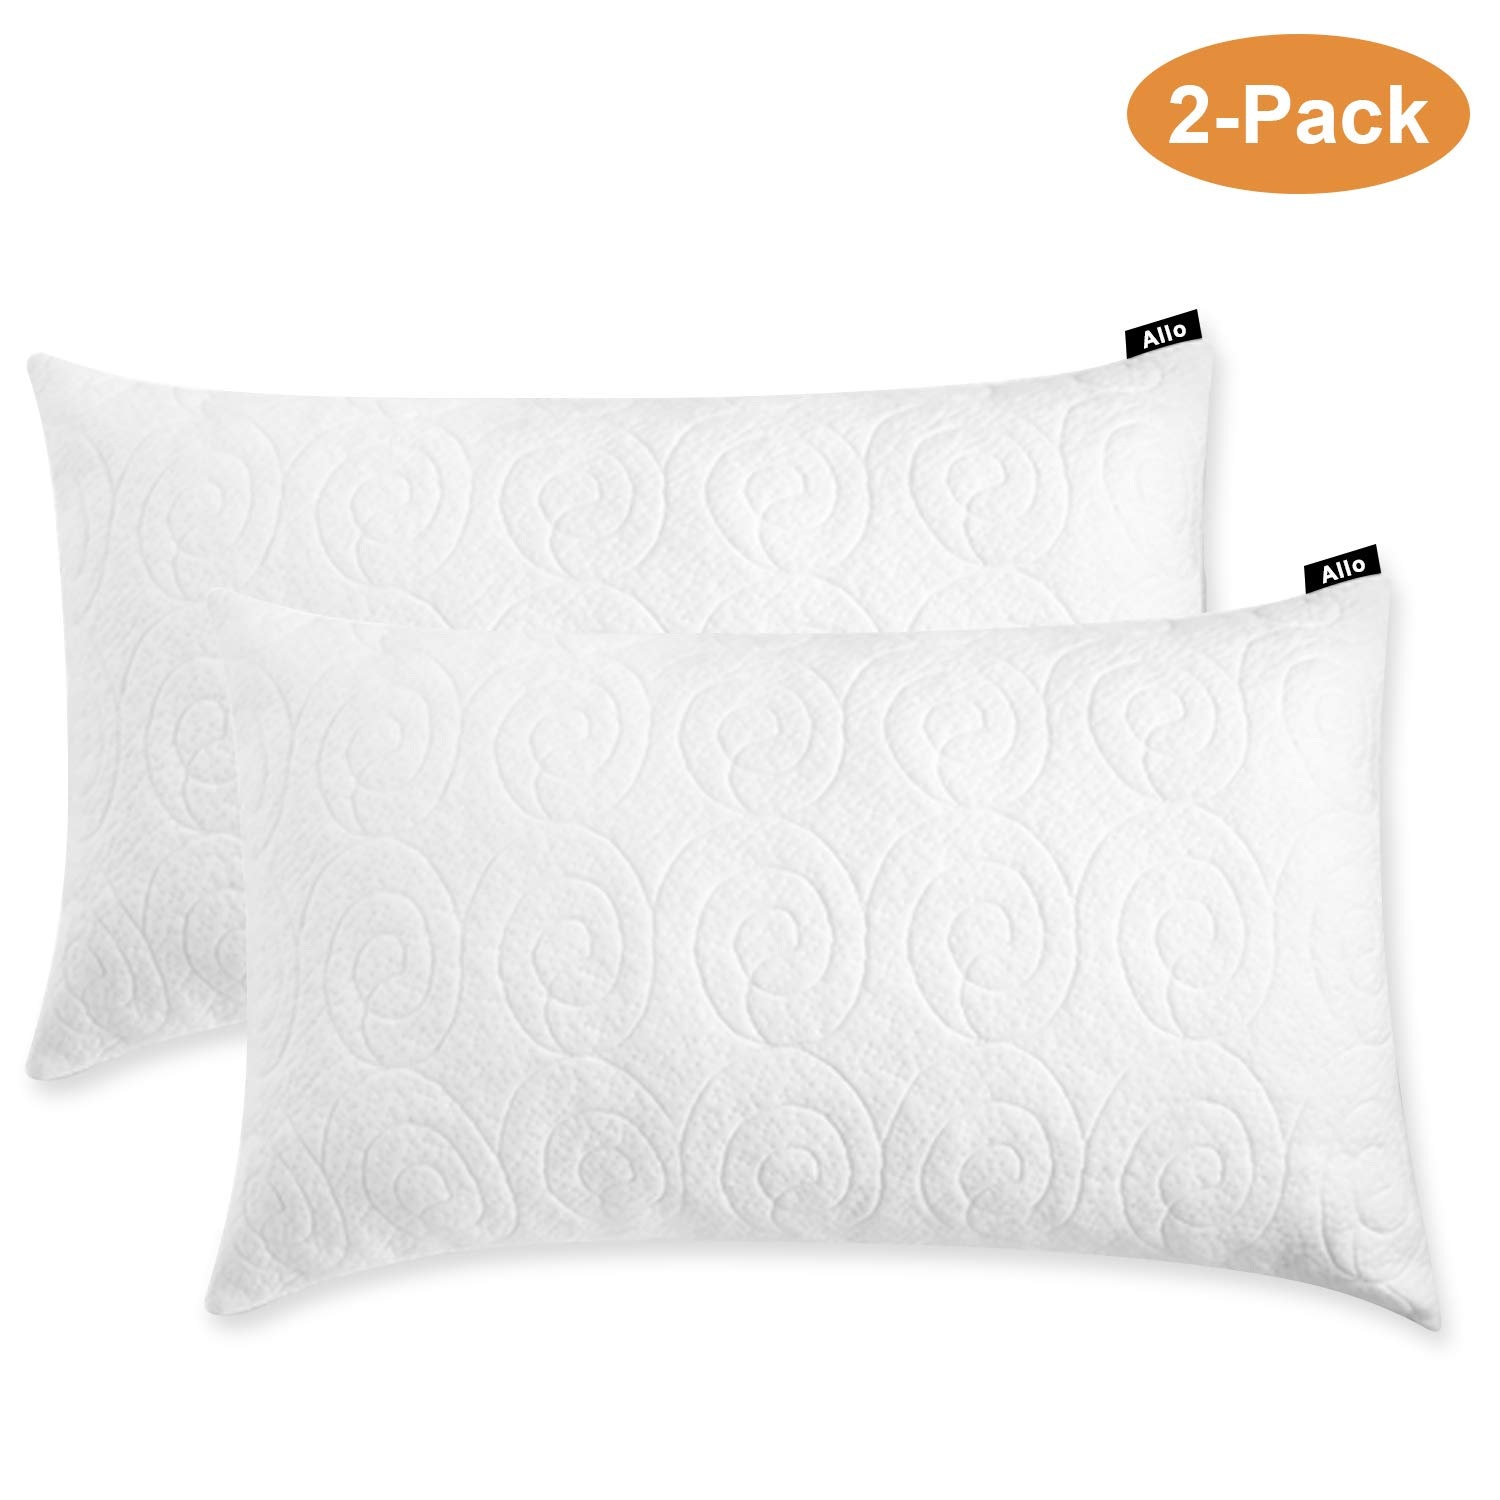 Allo Shredded Memory Foam Pillow, Adjustable Hypoallergenic Infused Fill Bed Pillow, Removable Bamboo Derived Rayon Cover - 2 Pack (King)